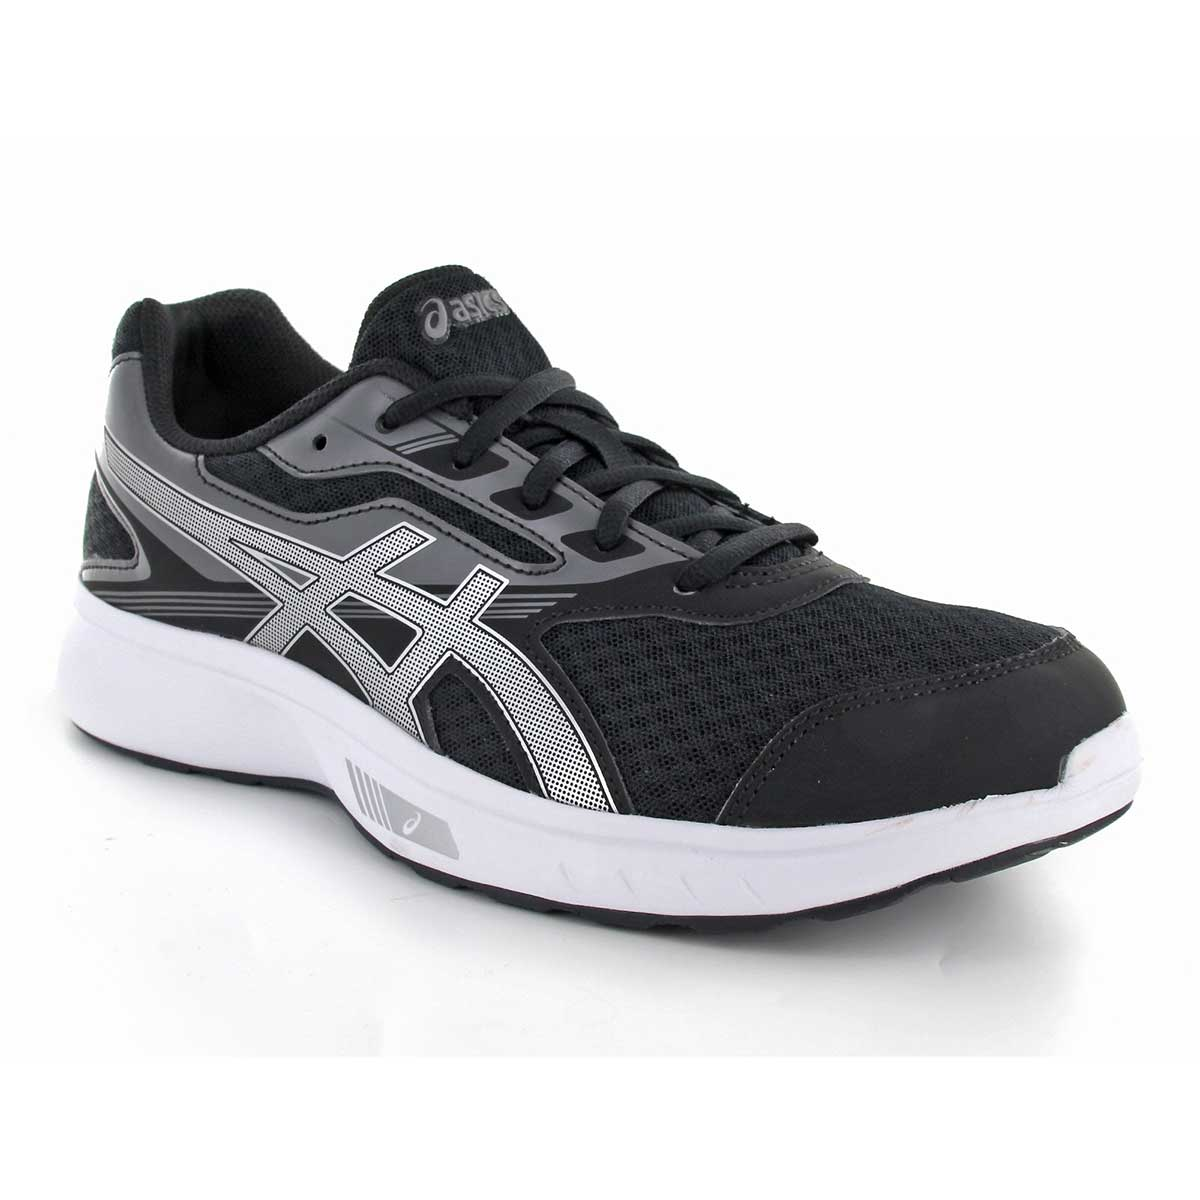 Buy Asics Stormer Men Men Men Running Schuhes Online India cf93dc